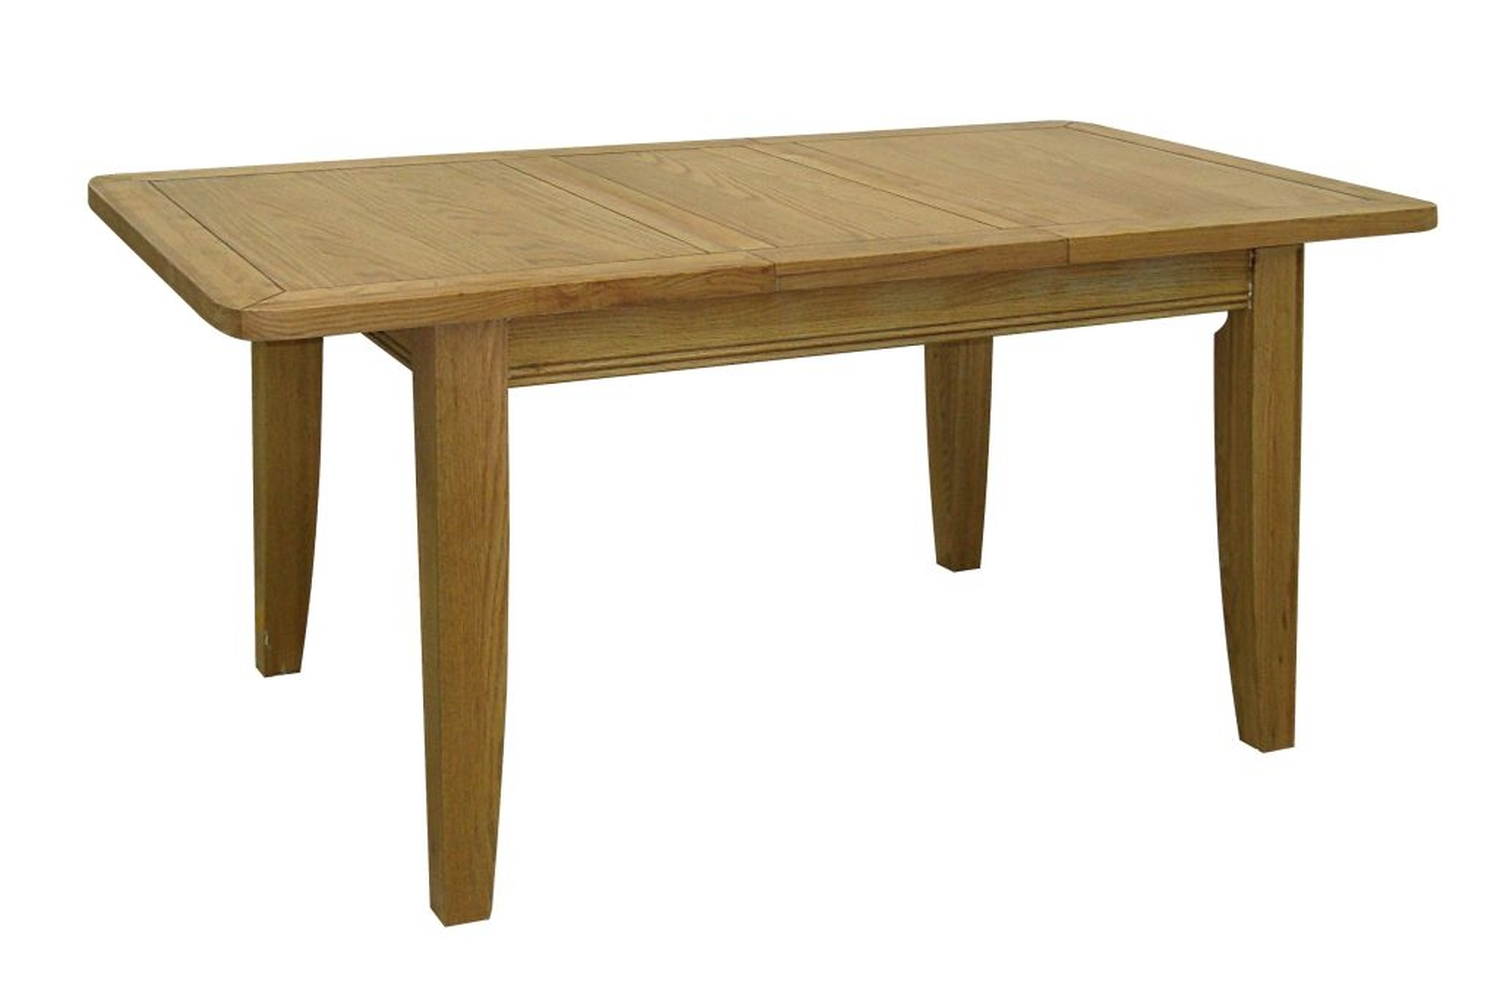 Linden solid oak dining room furniture extending dining for Solid oak dining table